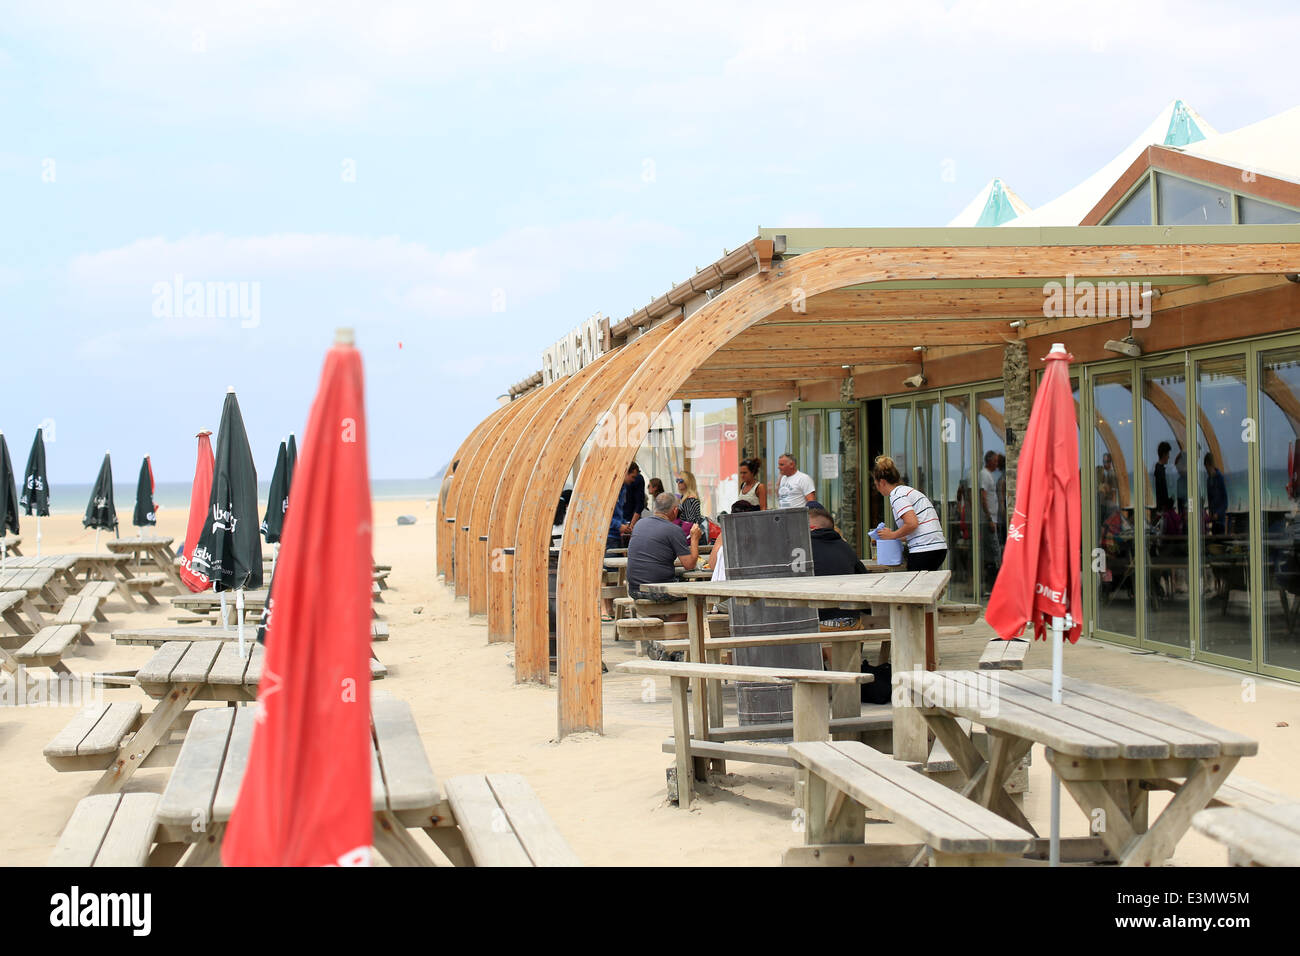 The Watering Hole pub on the beach at Perranporth, Cornwall - Stock Image